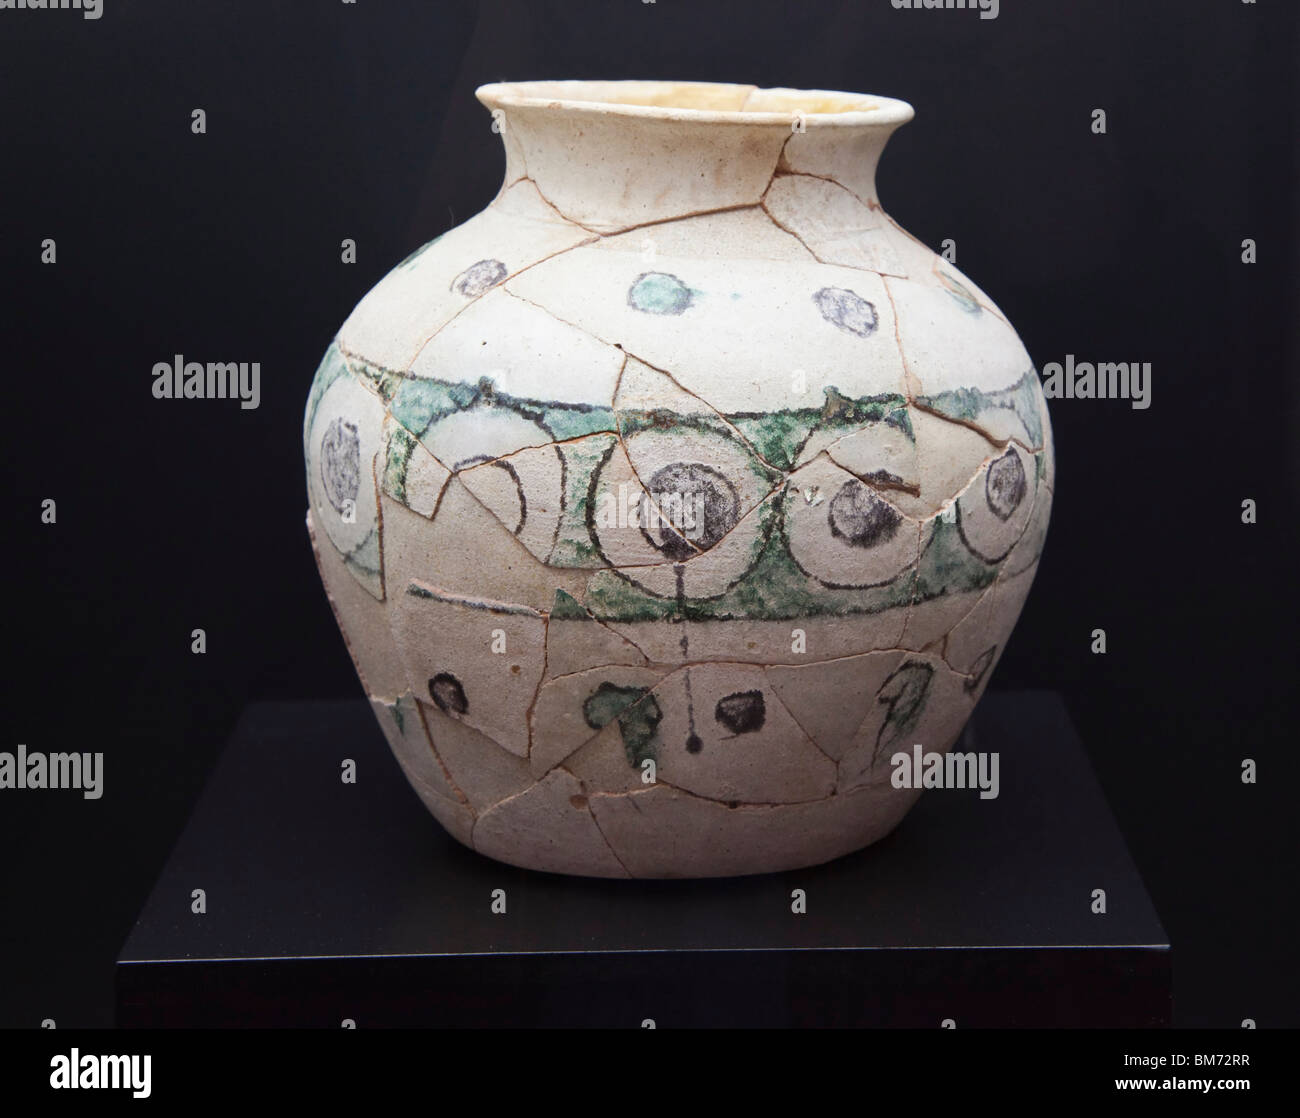 Glazed earthenware jar, circa 10th century, decorated with geometric motifs in Museo arqueologico y etnologico, - Stock Image